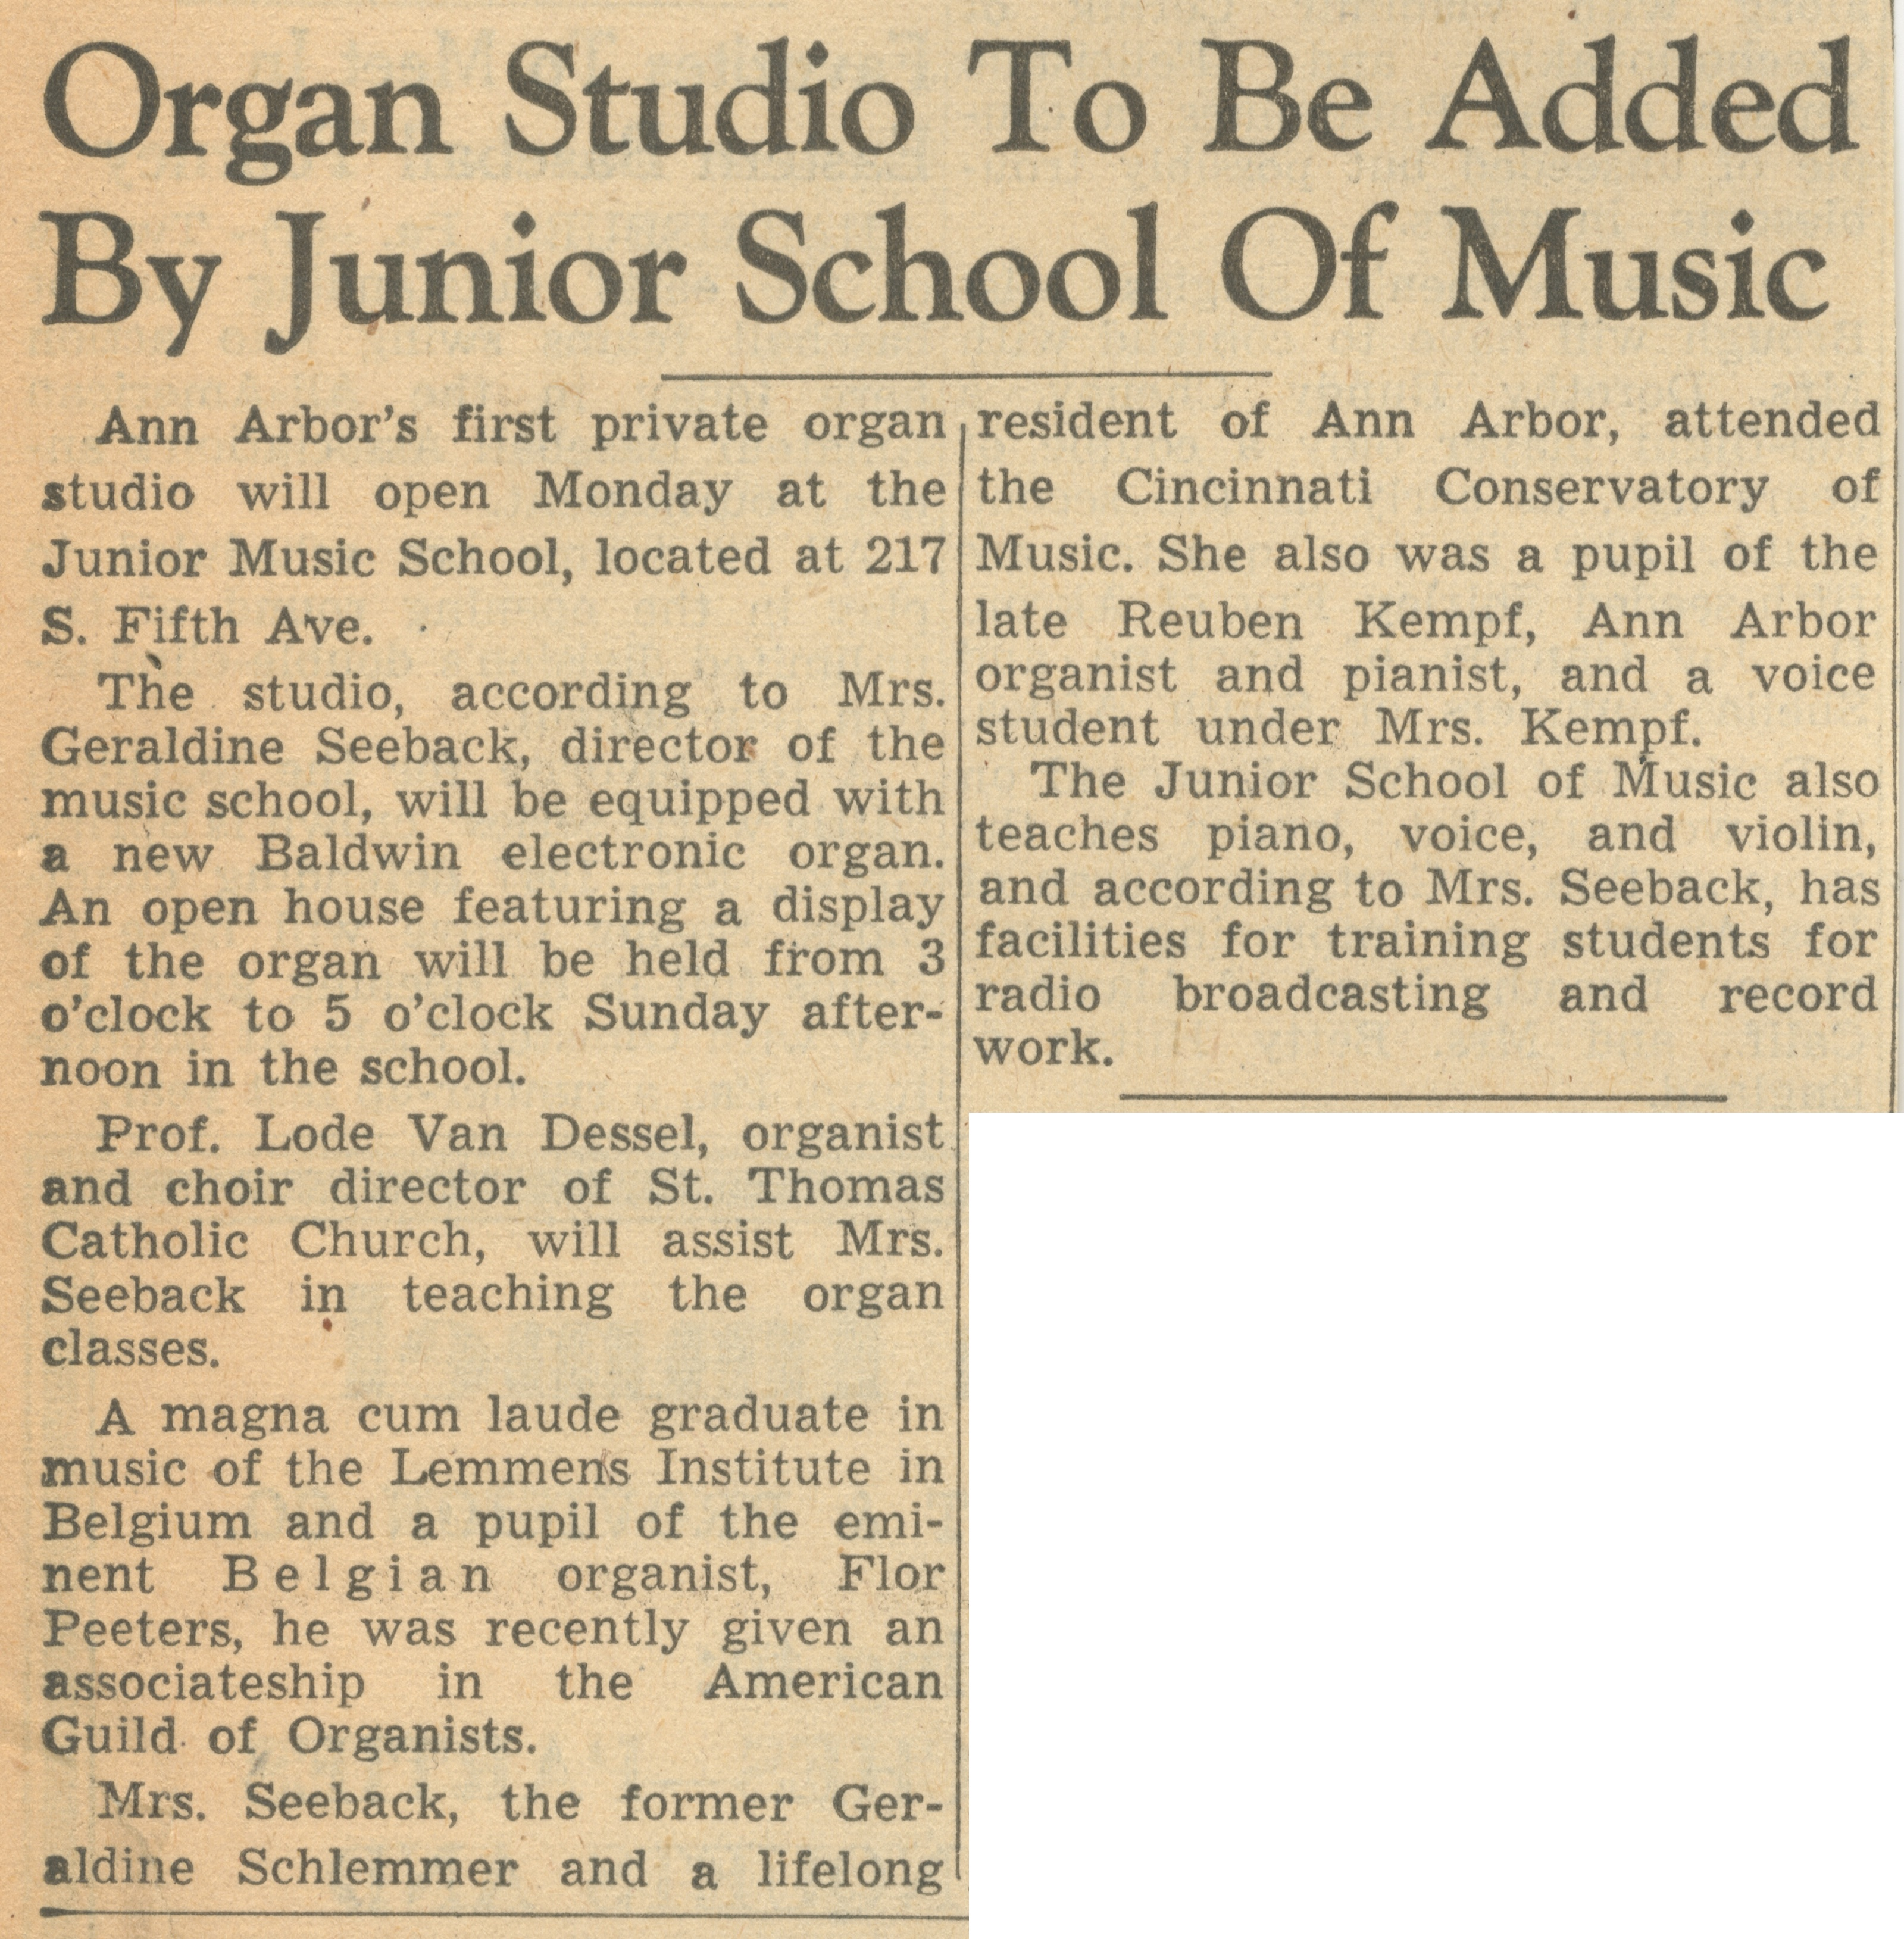 Organ Studio To Be Added By Junior School Of Music image